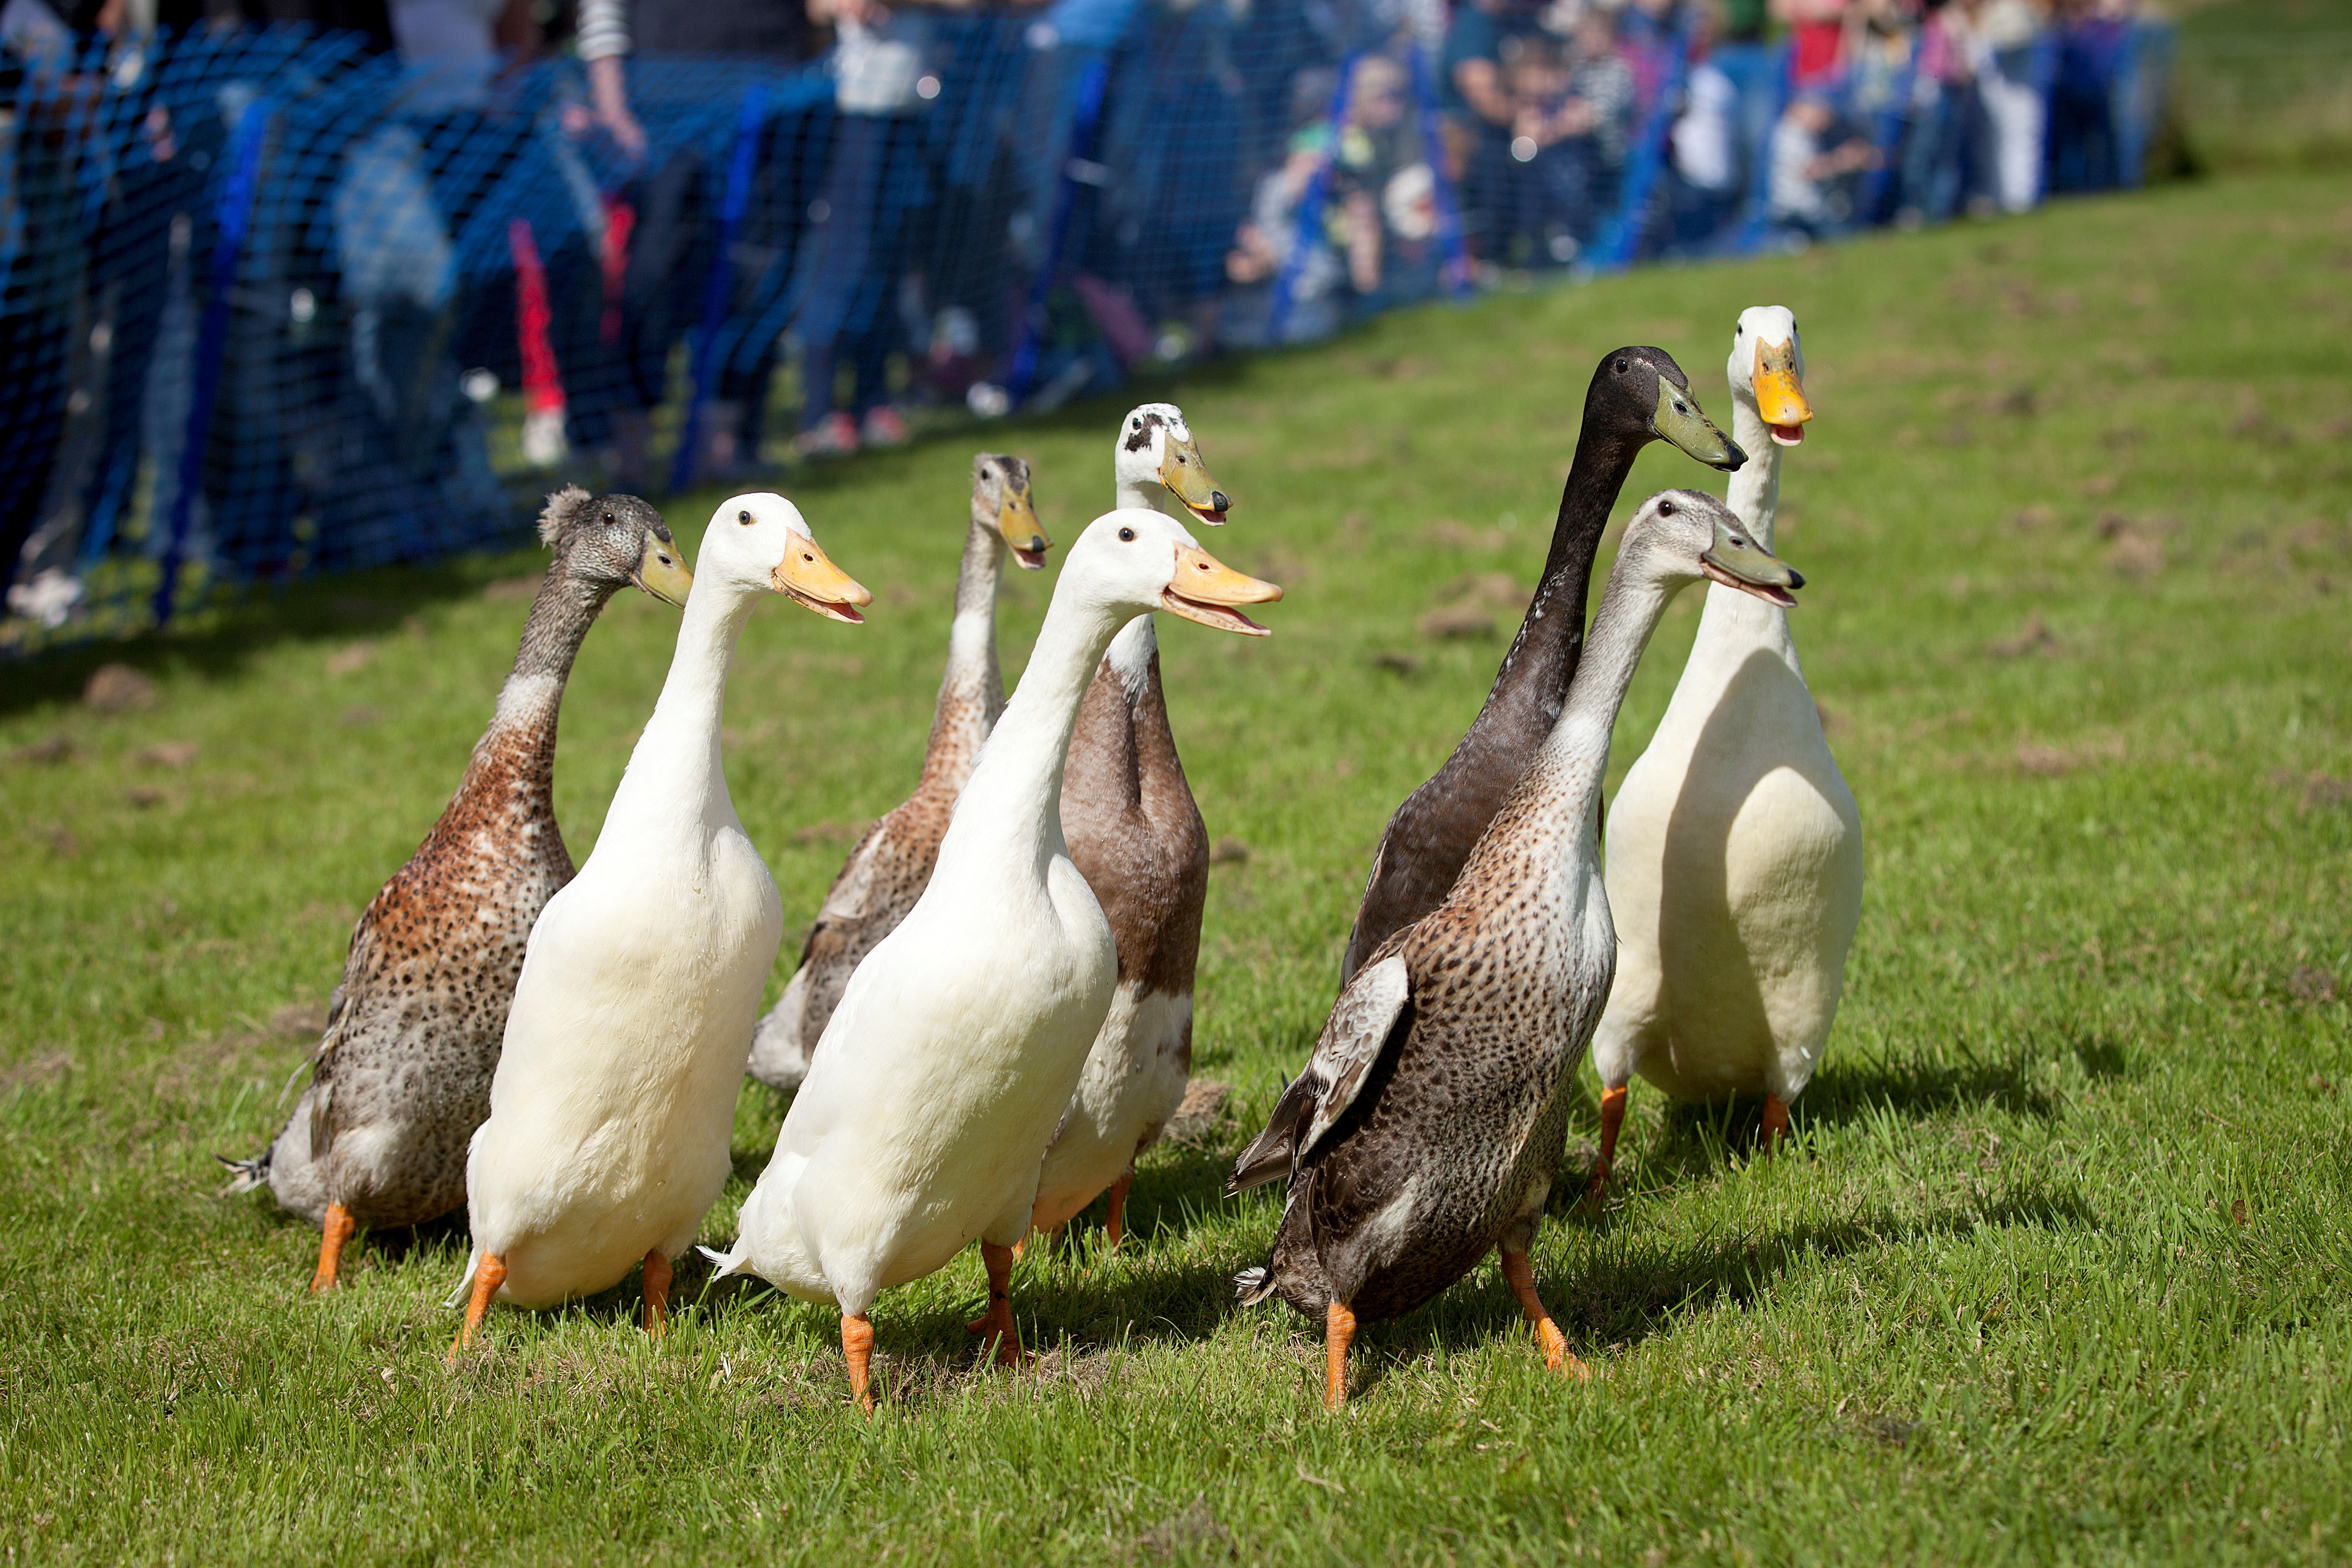 Watch the nifty manoeuvres of Indian Running ducks the Dog and Duck Show © Ruth Armstrong.